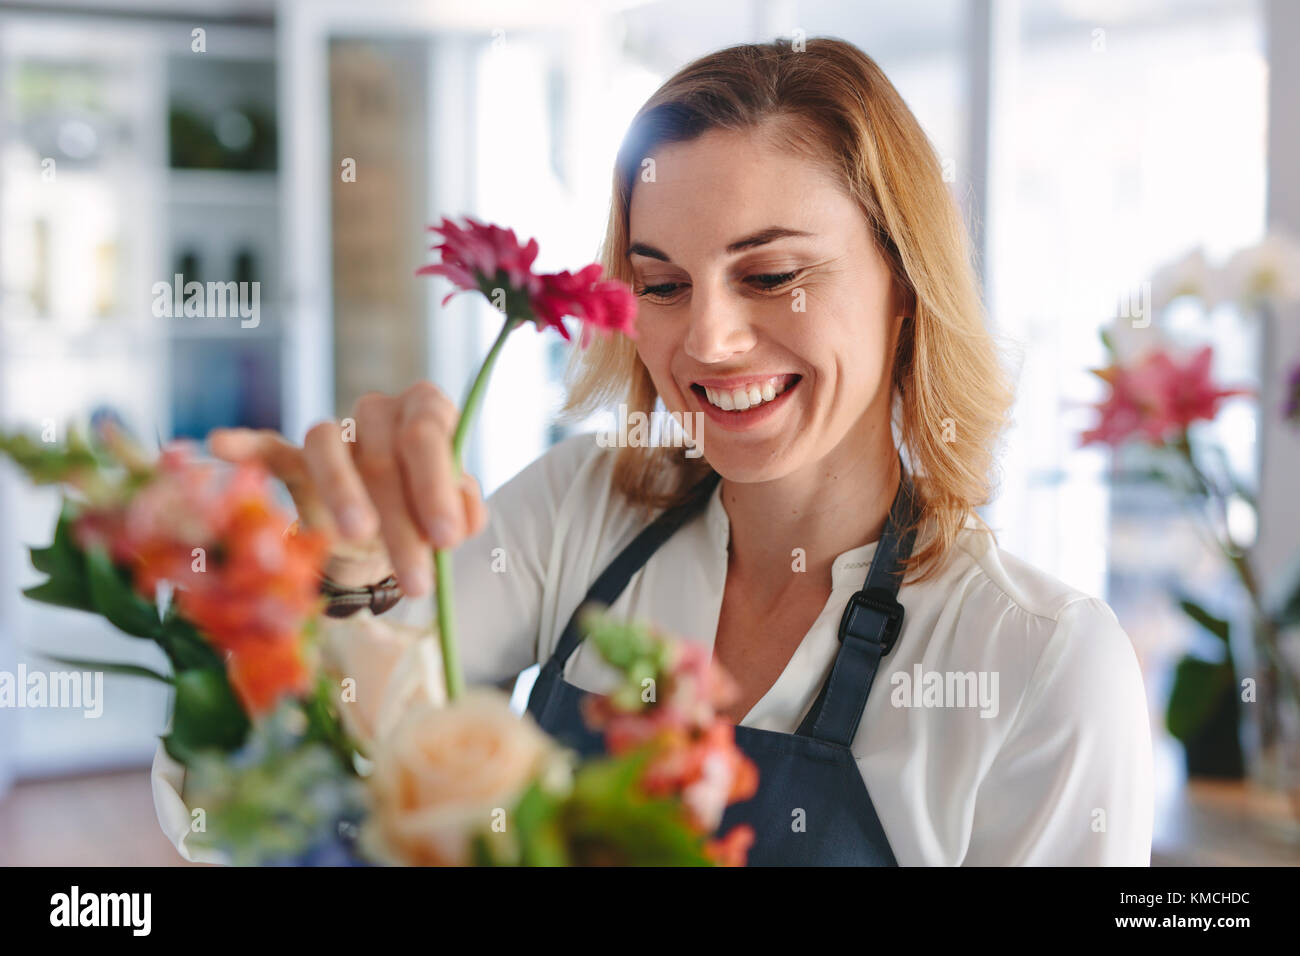 Female florist arranging flowers. Woman flower shop owner placing flowers in a bouquet. - Stock Image